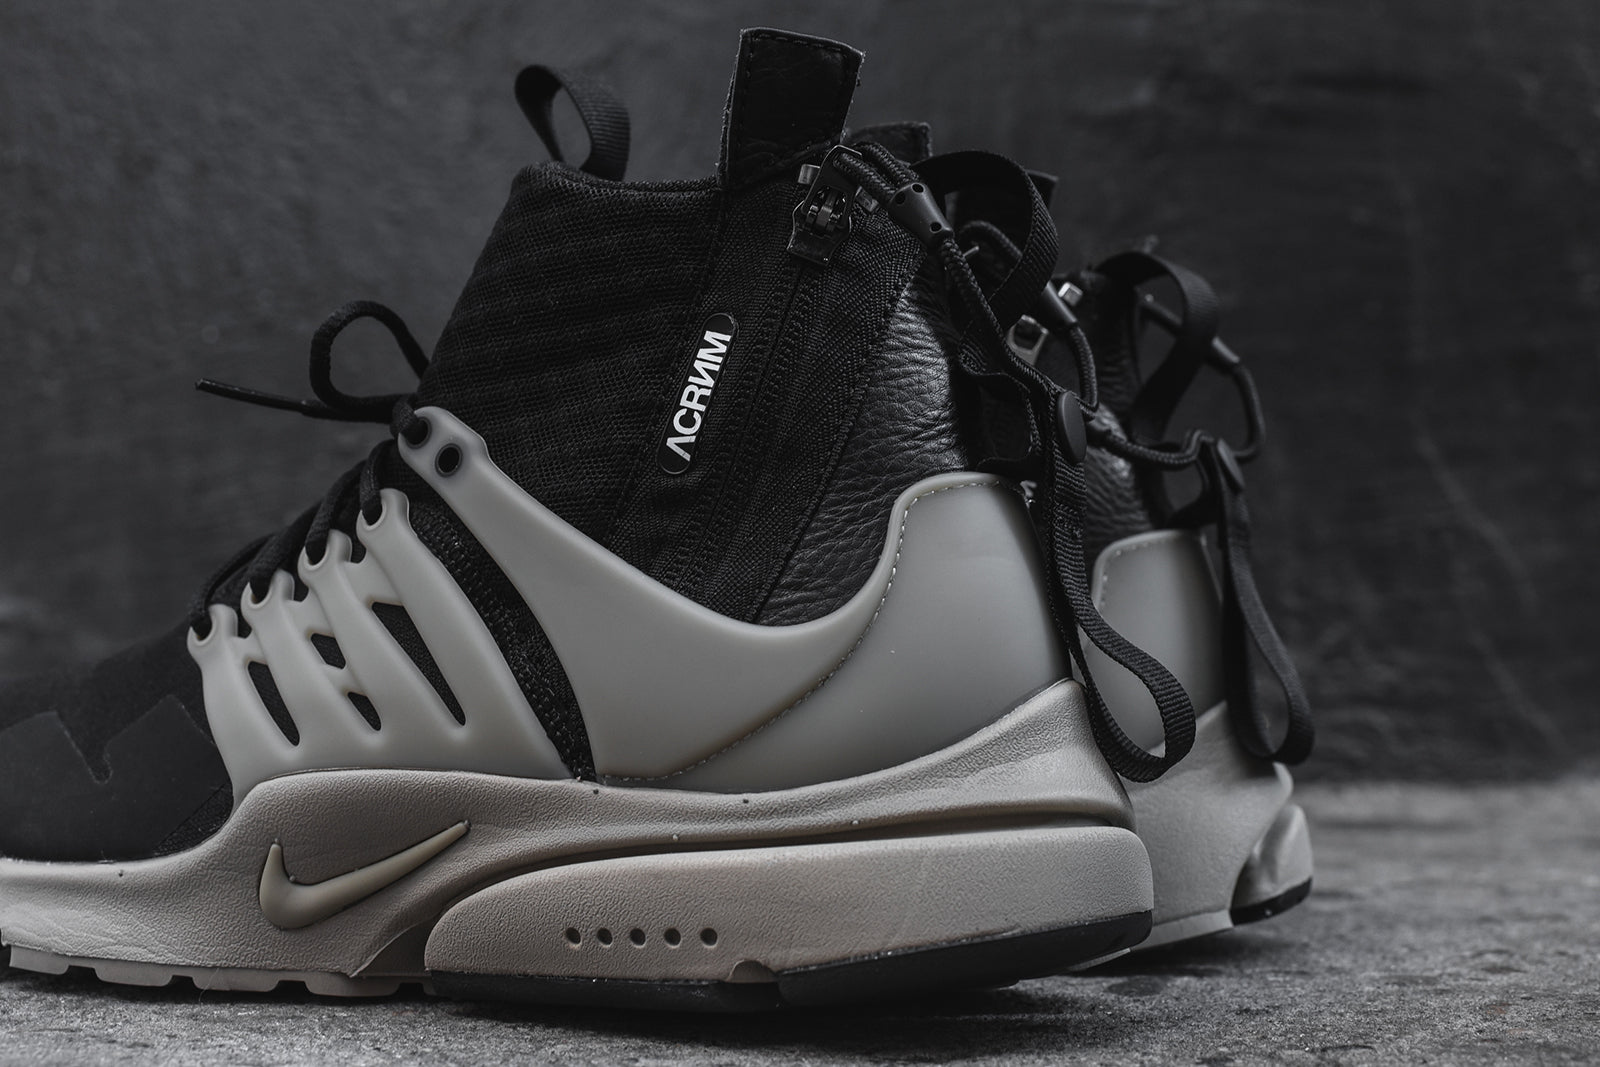 56bf3624b4f4 Nike x Acronym Air Presto Mid Pack. September 15